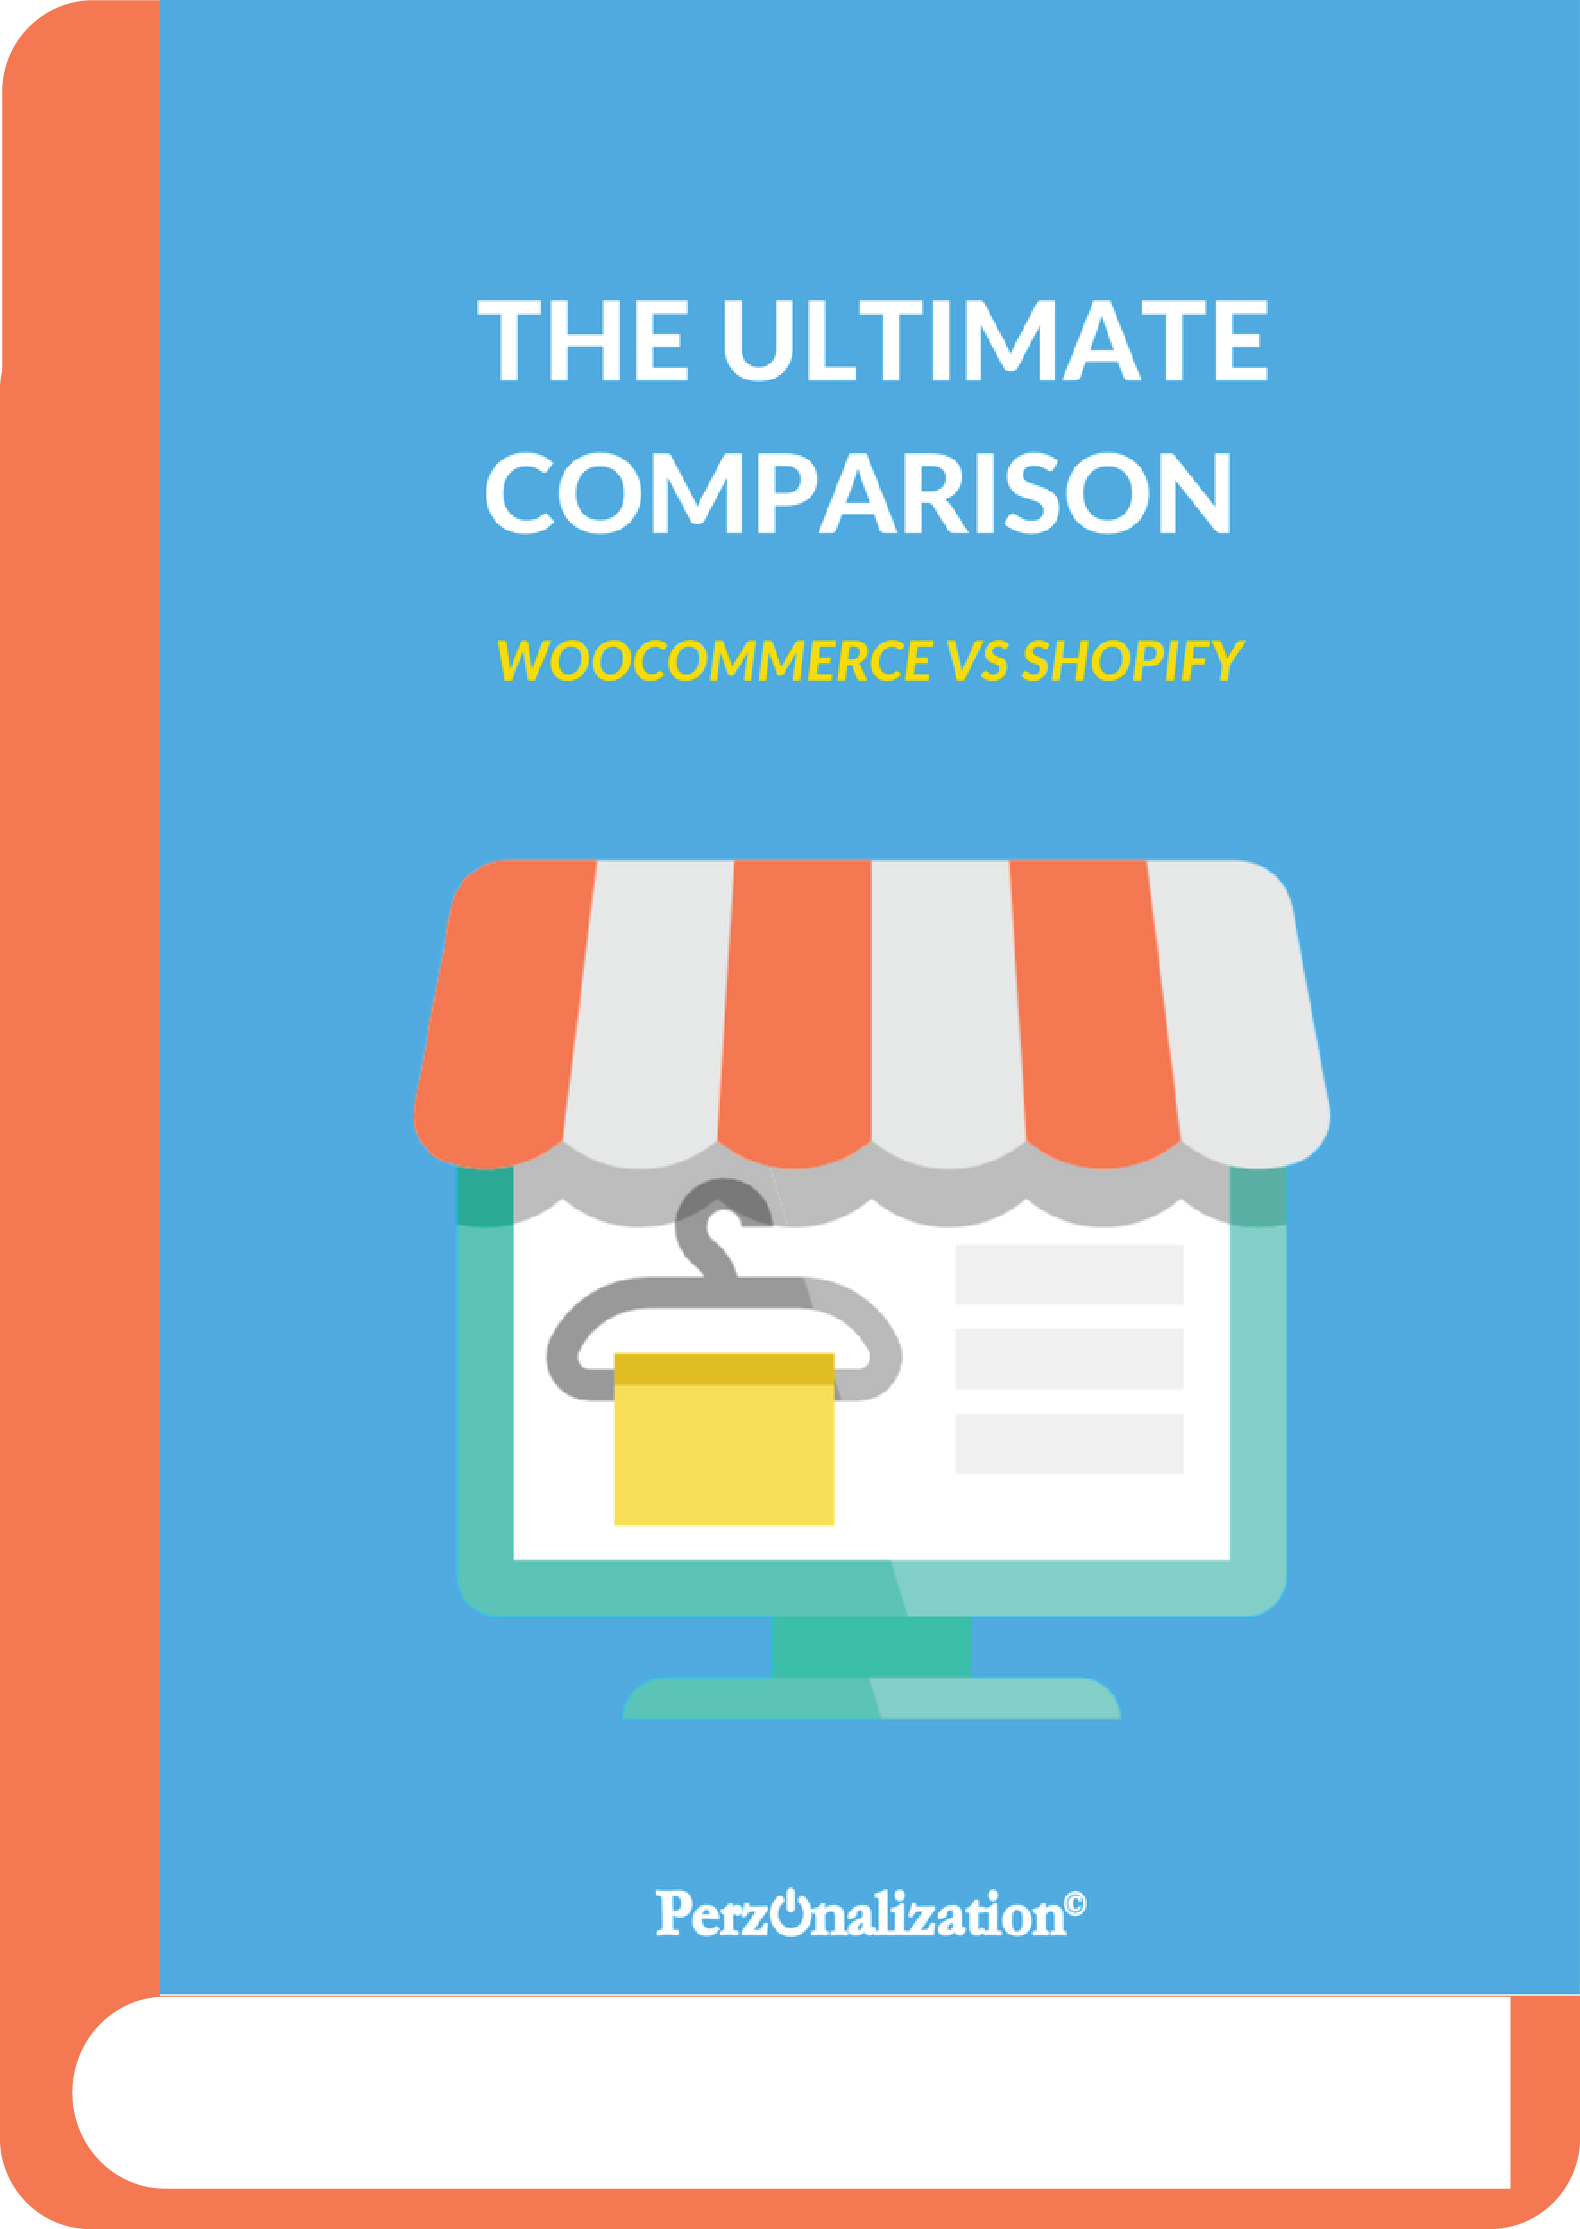 If you're just building your eCommerce business, it may be hard to decide on an eCommerce platform. In this free eBook, find out about different aspects of the famous eCommerce platforms WooCommerce and Shopify. Learn about their capabilities on customer support, design, hosting. Don't make your decision before checking this guide!